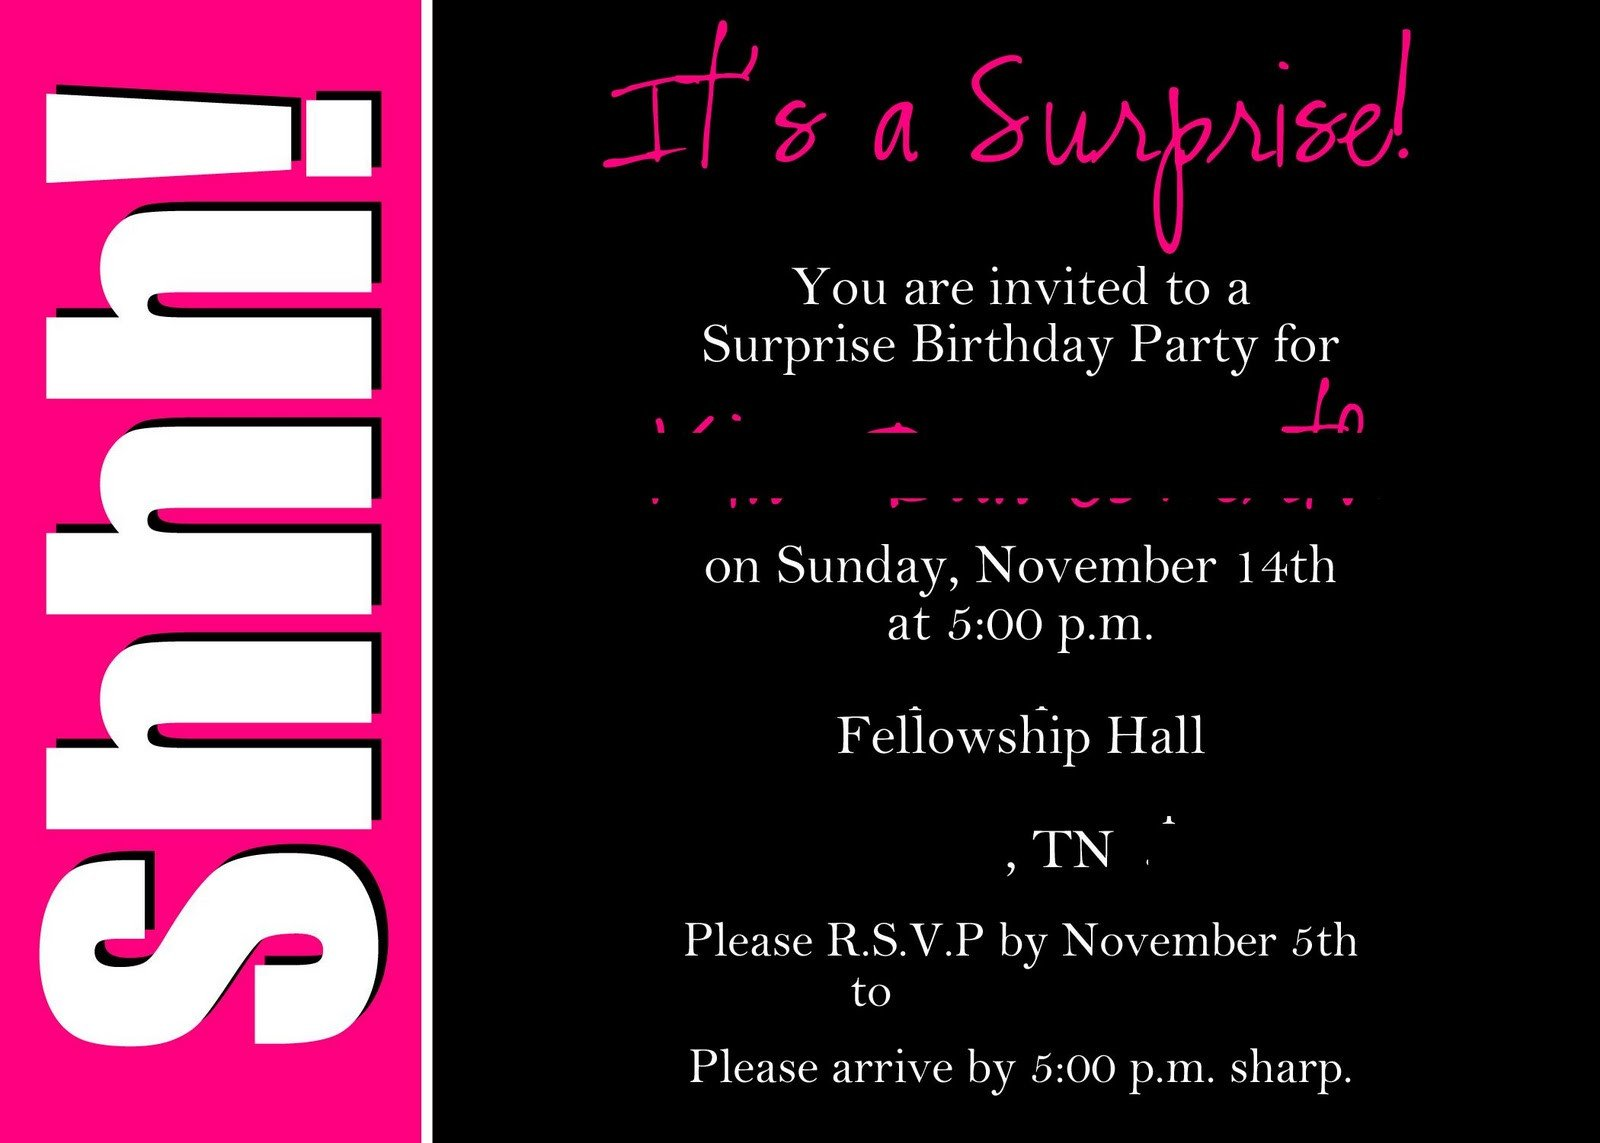 Surprise Party Invitation Templates Alicia S Delightful Designs Shhhh It S A Surprise